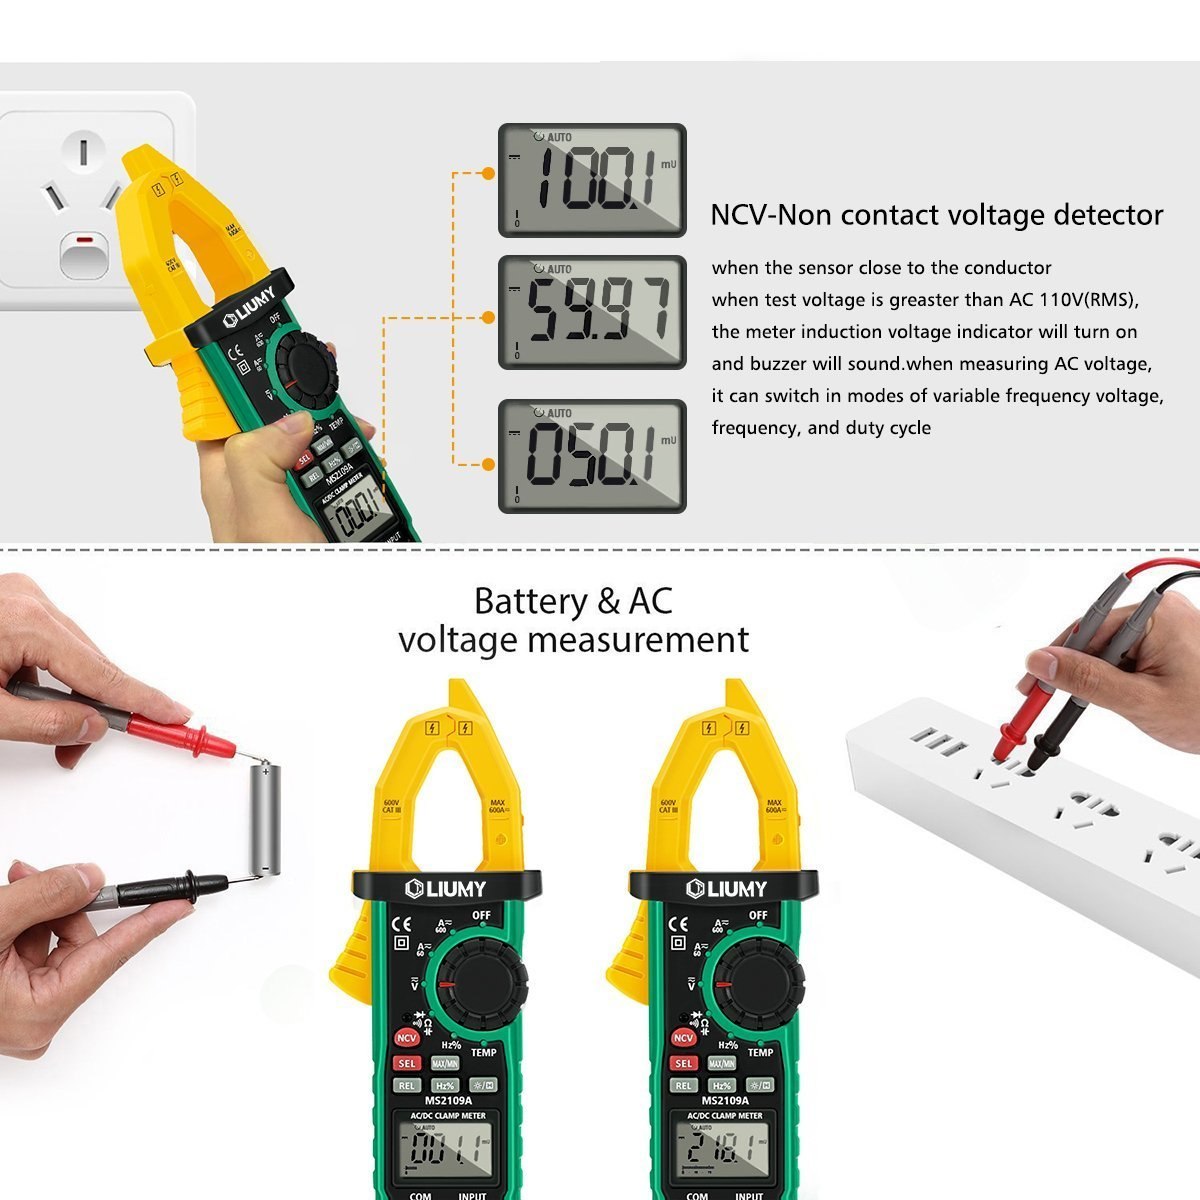 Digital Clamp Meter, LIUMY Auto-Ranging AC/DC Clamp Multimeter with Analog Function, NCV, Work Light/ Memory peak, Non- contact Voltages/ Frequency/ Resistance/ Capacitance/ Connections/ Diodes by Liumy (Image #6)